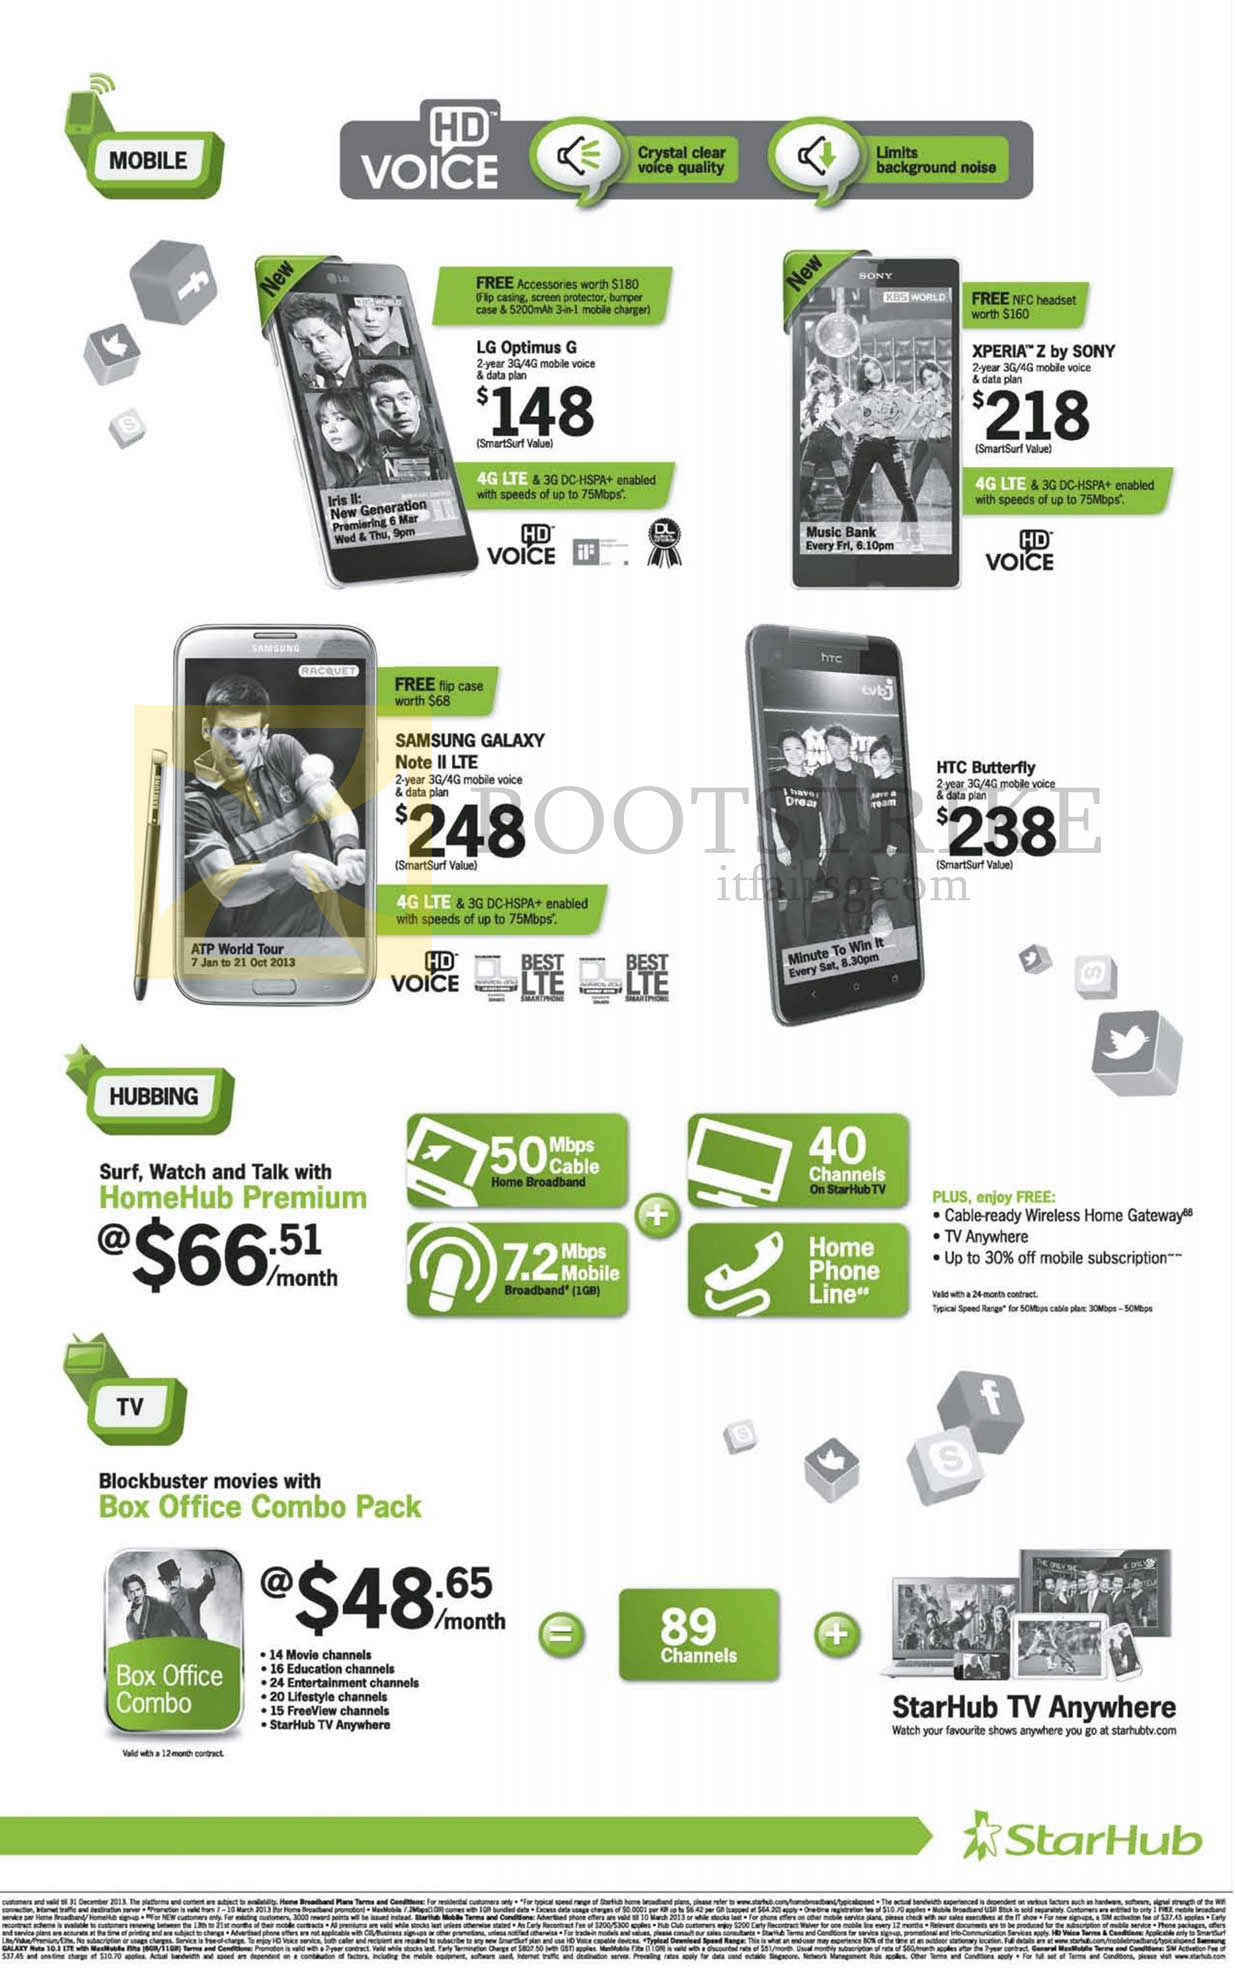 IT SHOW 2013 price list image brochure of Starhub Mobile Phones HD Voice LG Optimus G, Sony Xperia Z, Samsung Galaxy Note II LTE, HTC Butterfly, Cable TV Box Office Combo Pack